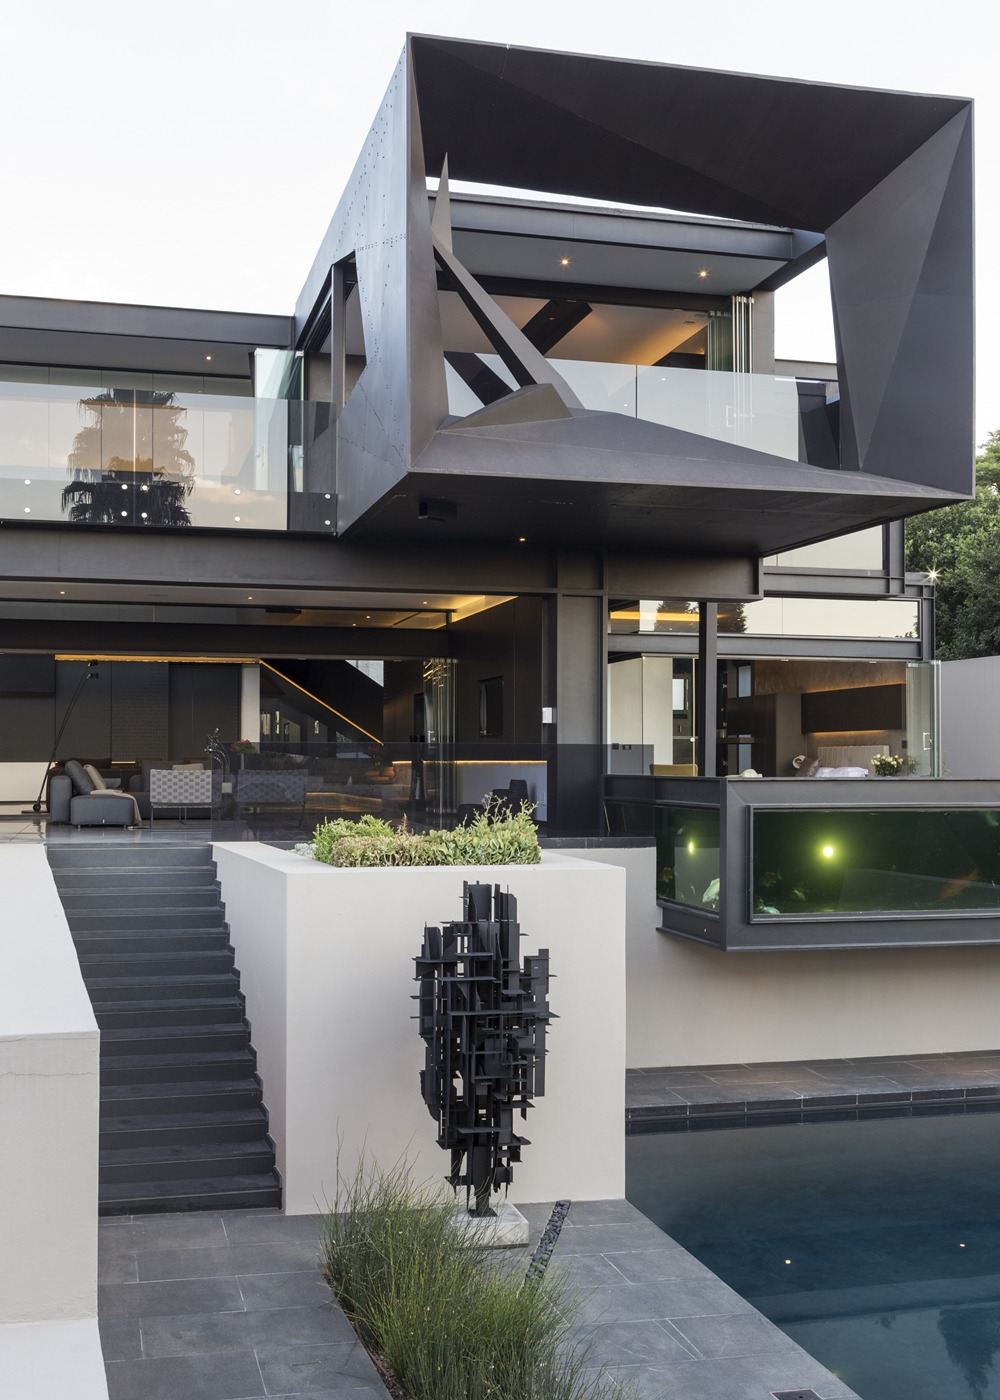 Best Houses in the World Amazing Kloof Road House featured on architecture beast 01 6